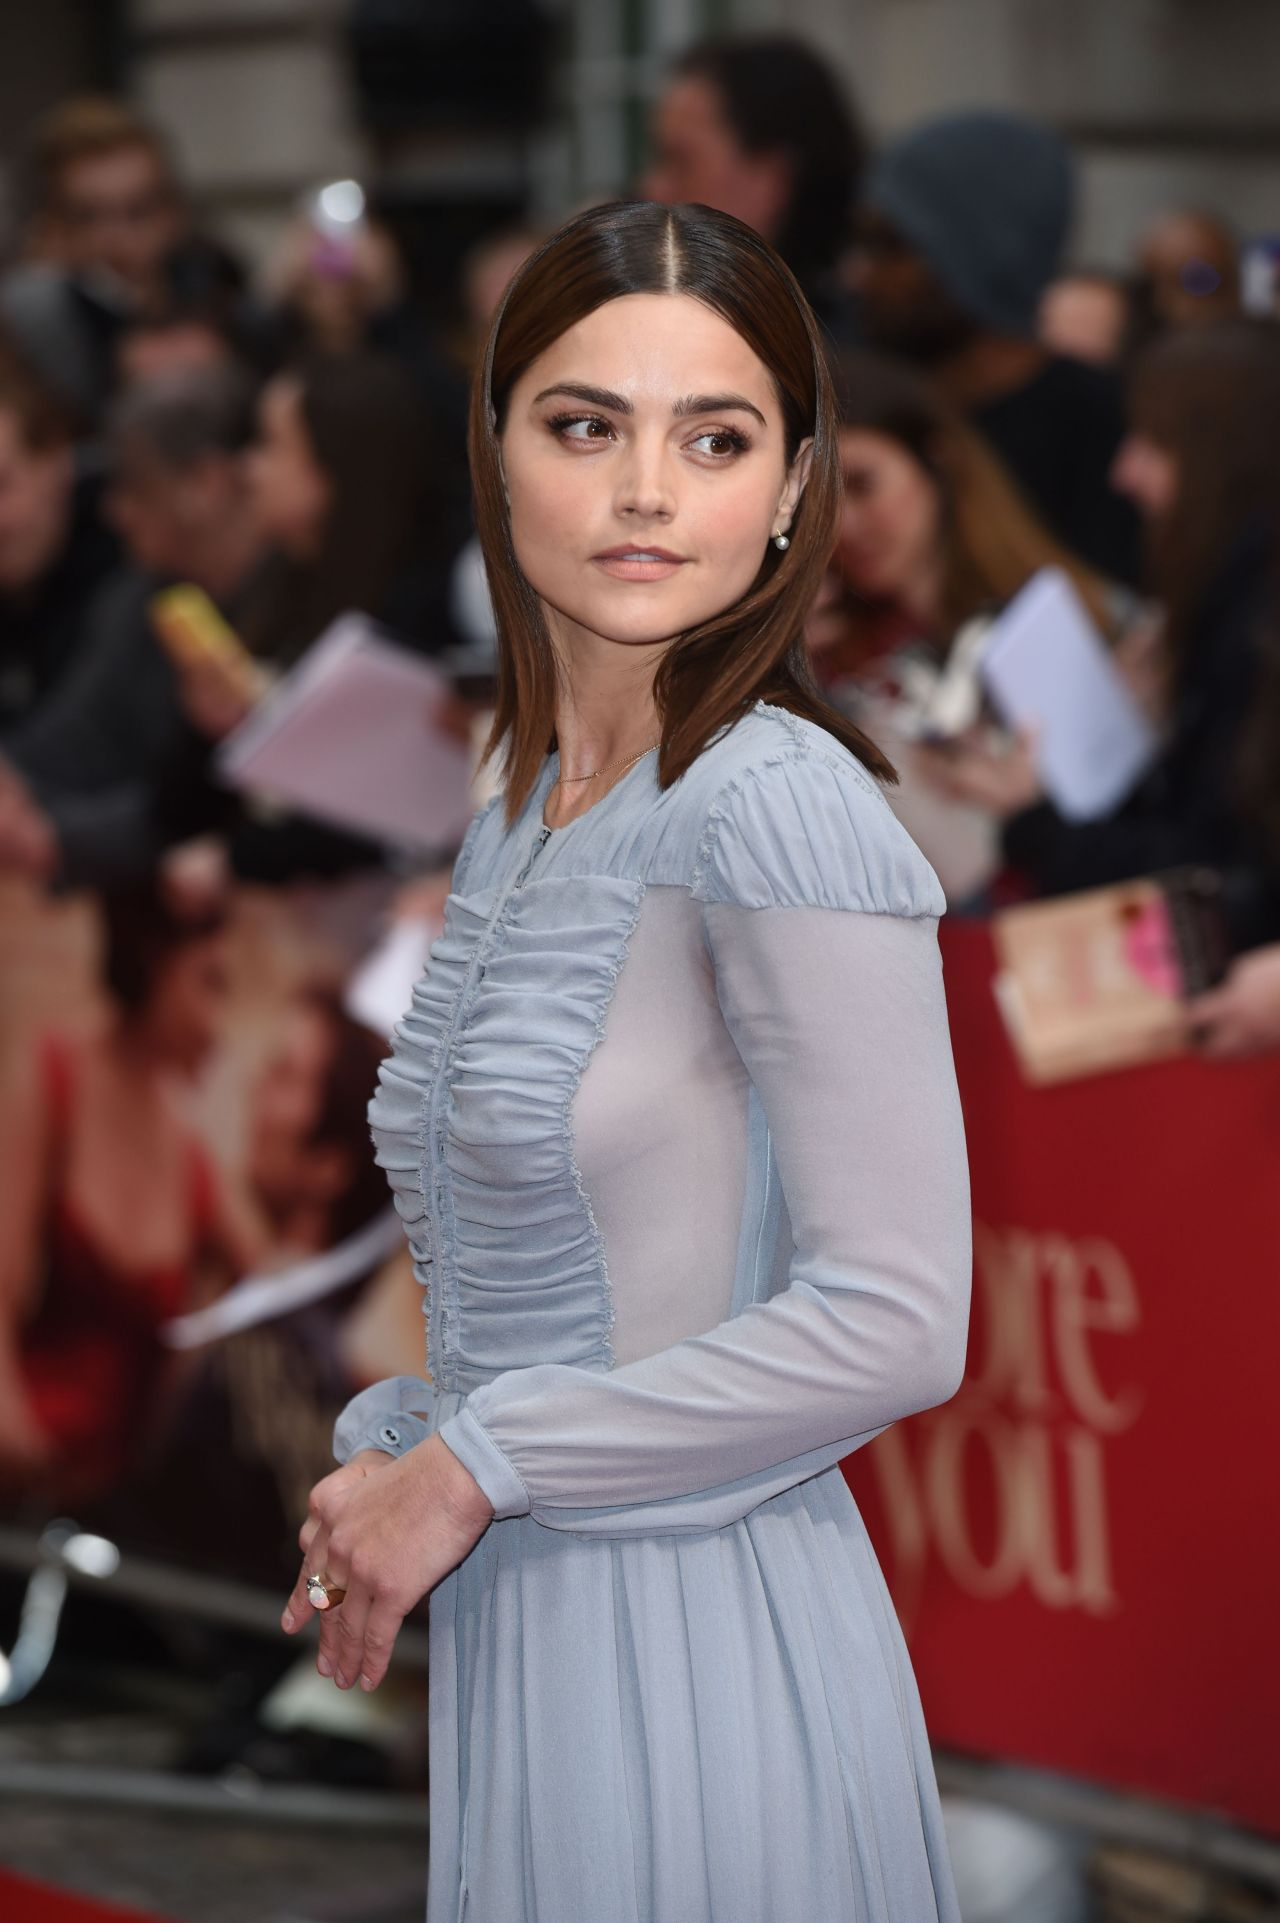 Pics Jenna-Louise Coleman naked (91 photo), Tits, Fappening, Selfie, lingerie 2020